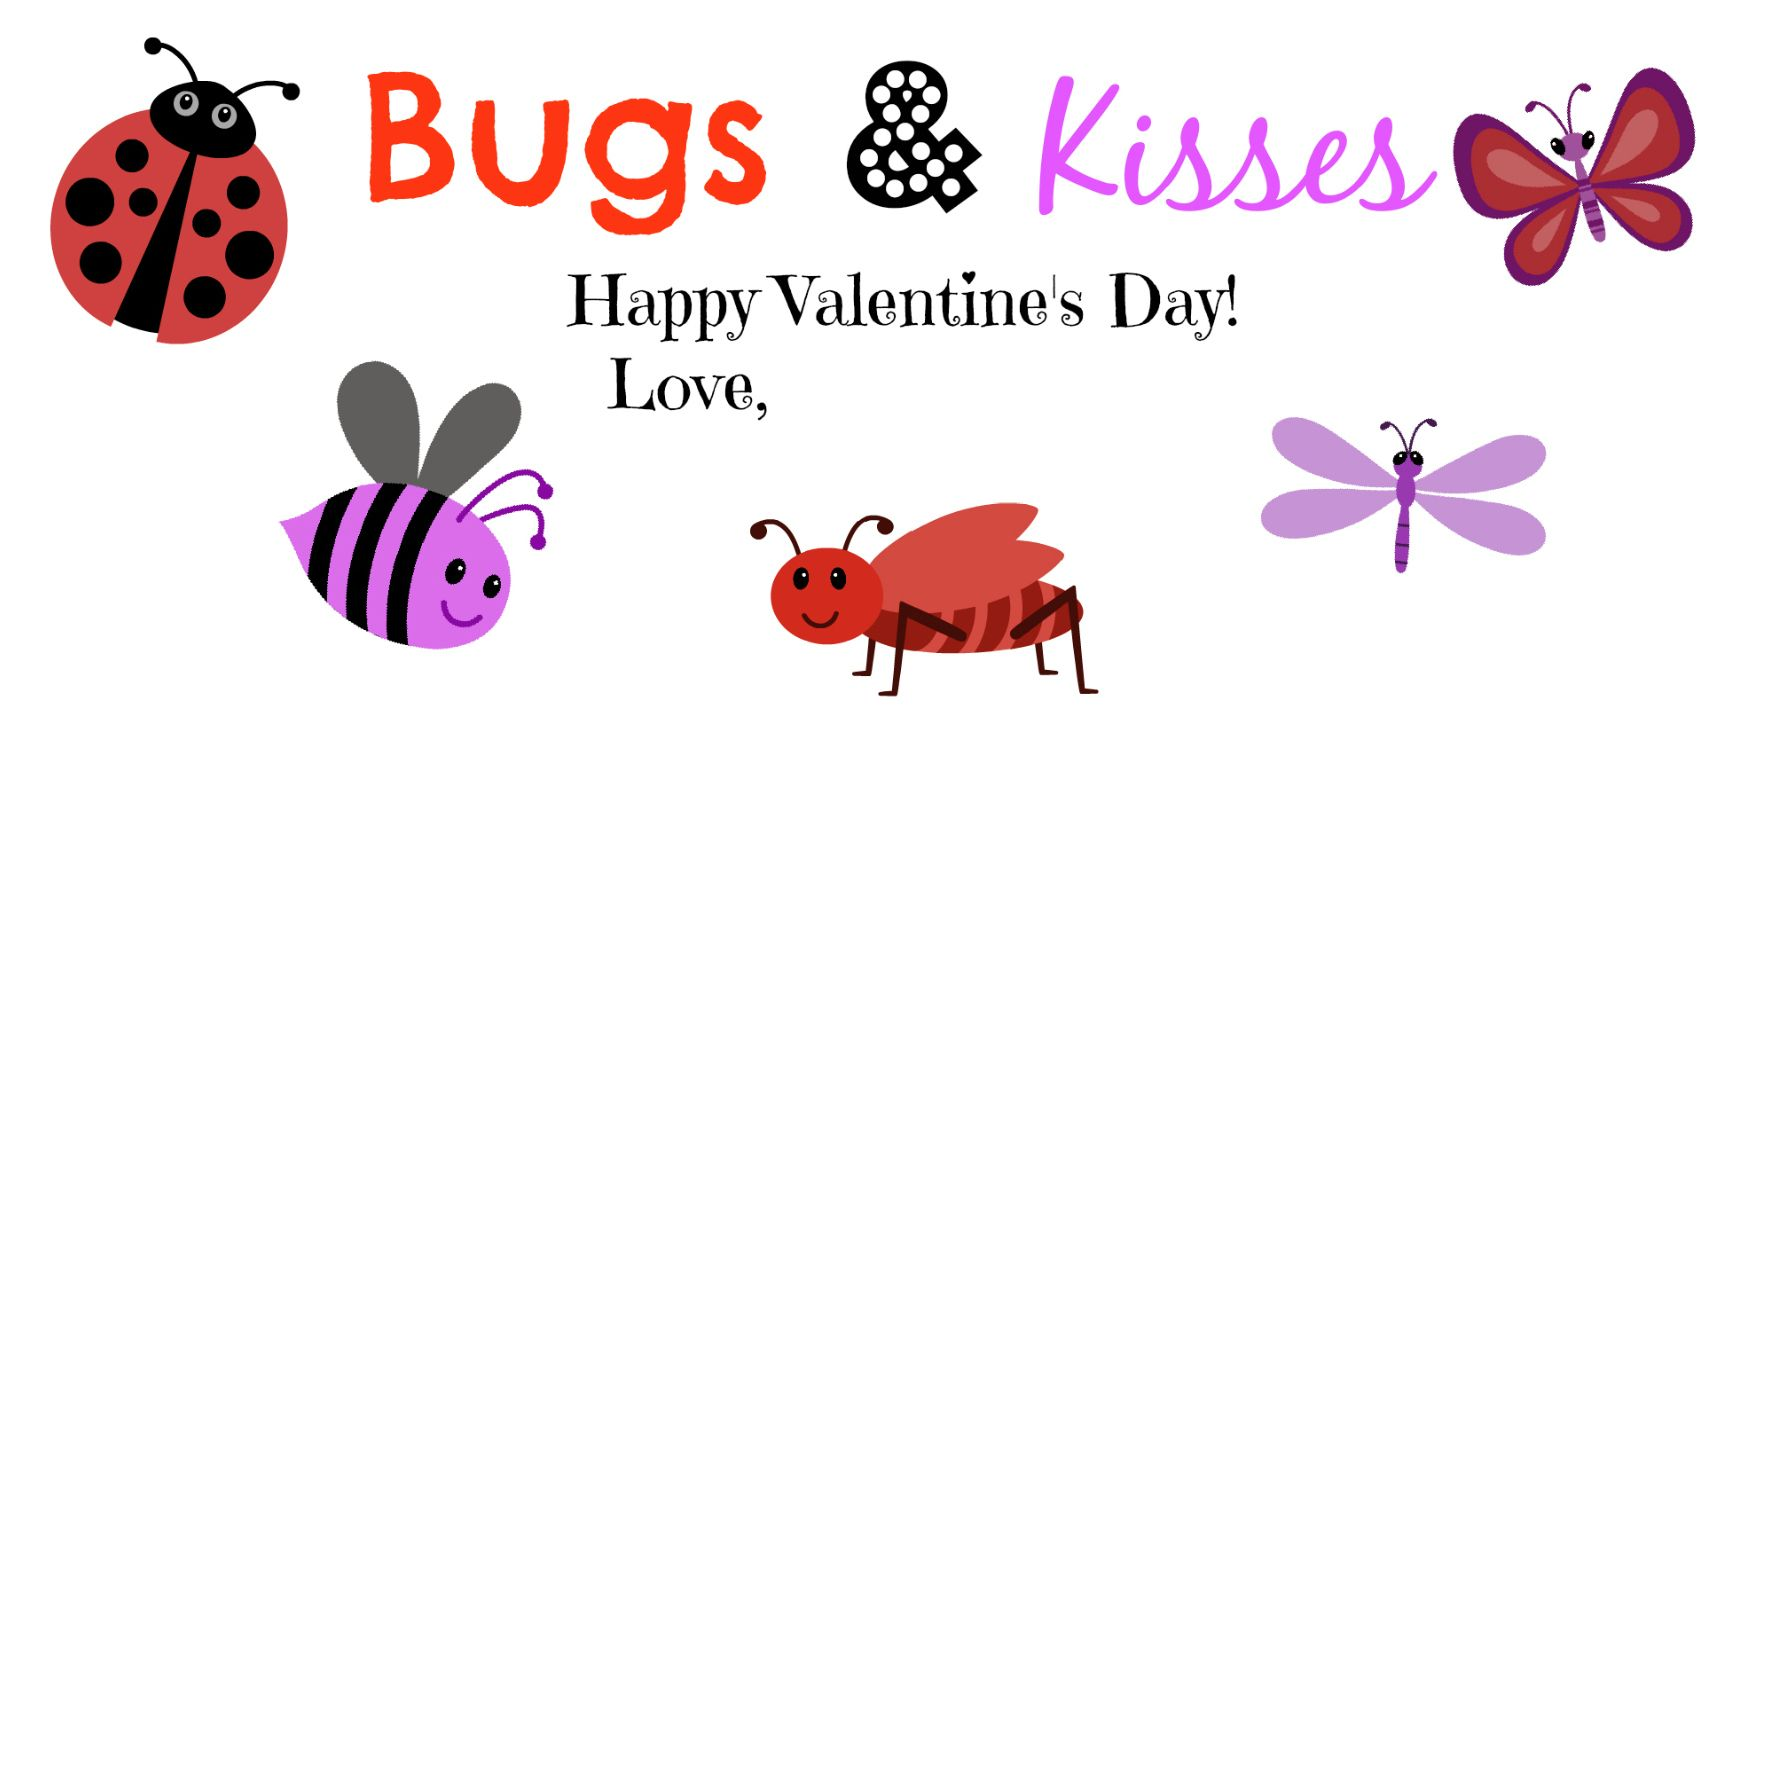 picture regarding Bugs and Kisses Printable named Insects Kisses! Valentines Working day Valentine working day playing cards